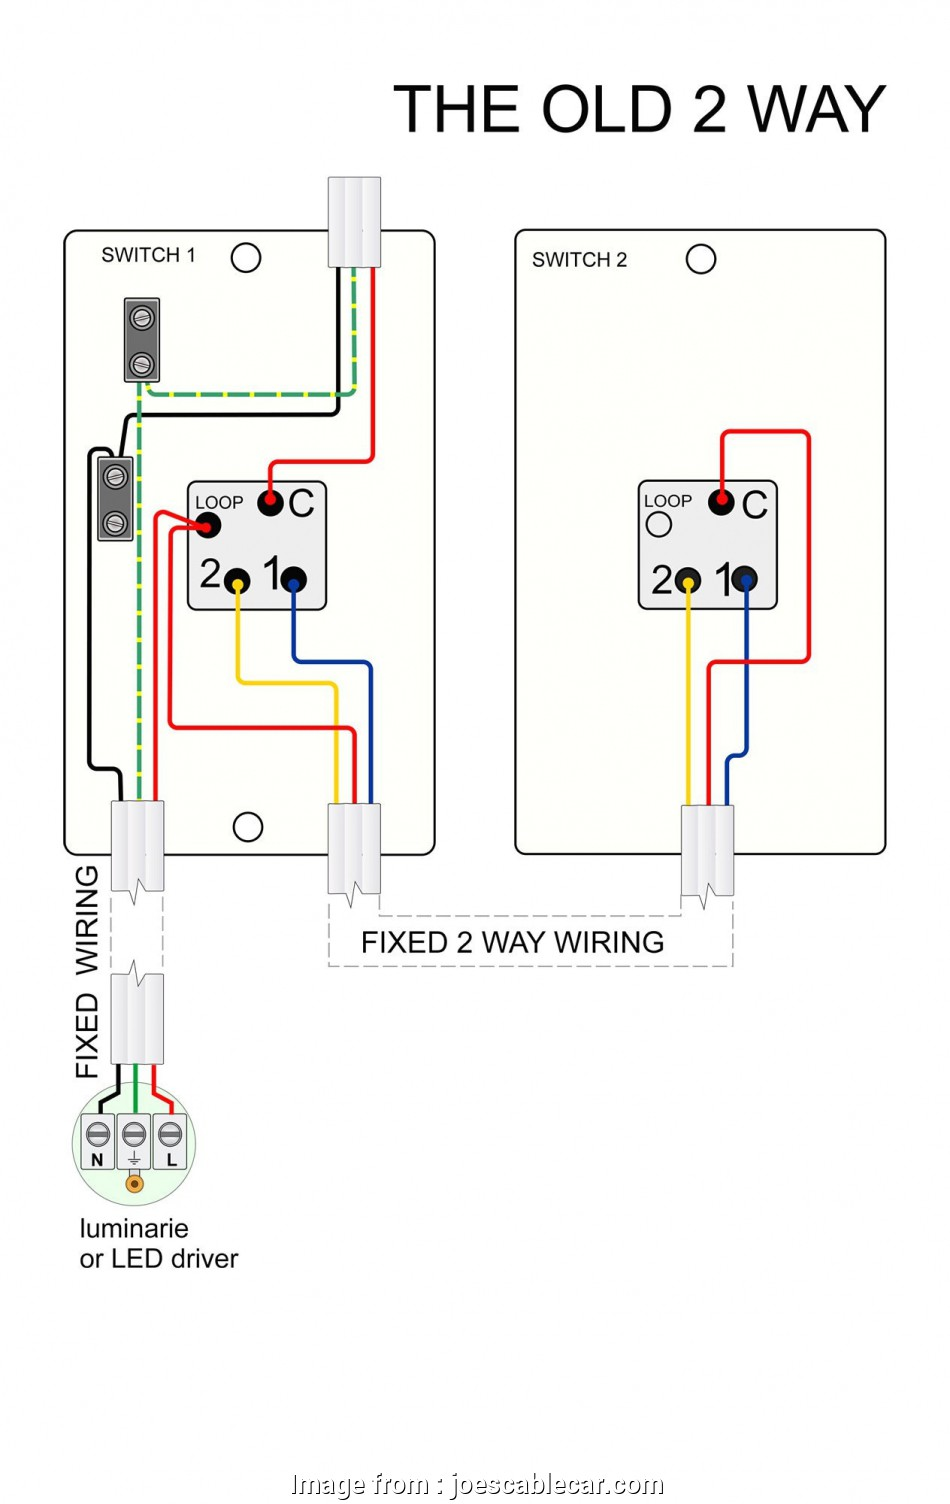 clipsal light switch wiring guide Fresh Clipsal Light Switch Wiring Diagram Australia, joescablecar.com 20 Creative Clipsal Light Switch Wiring Guide Ideas